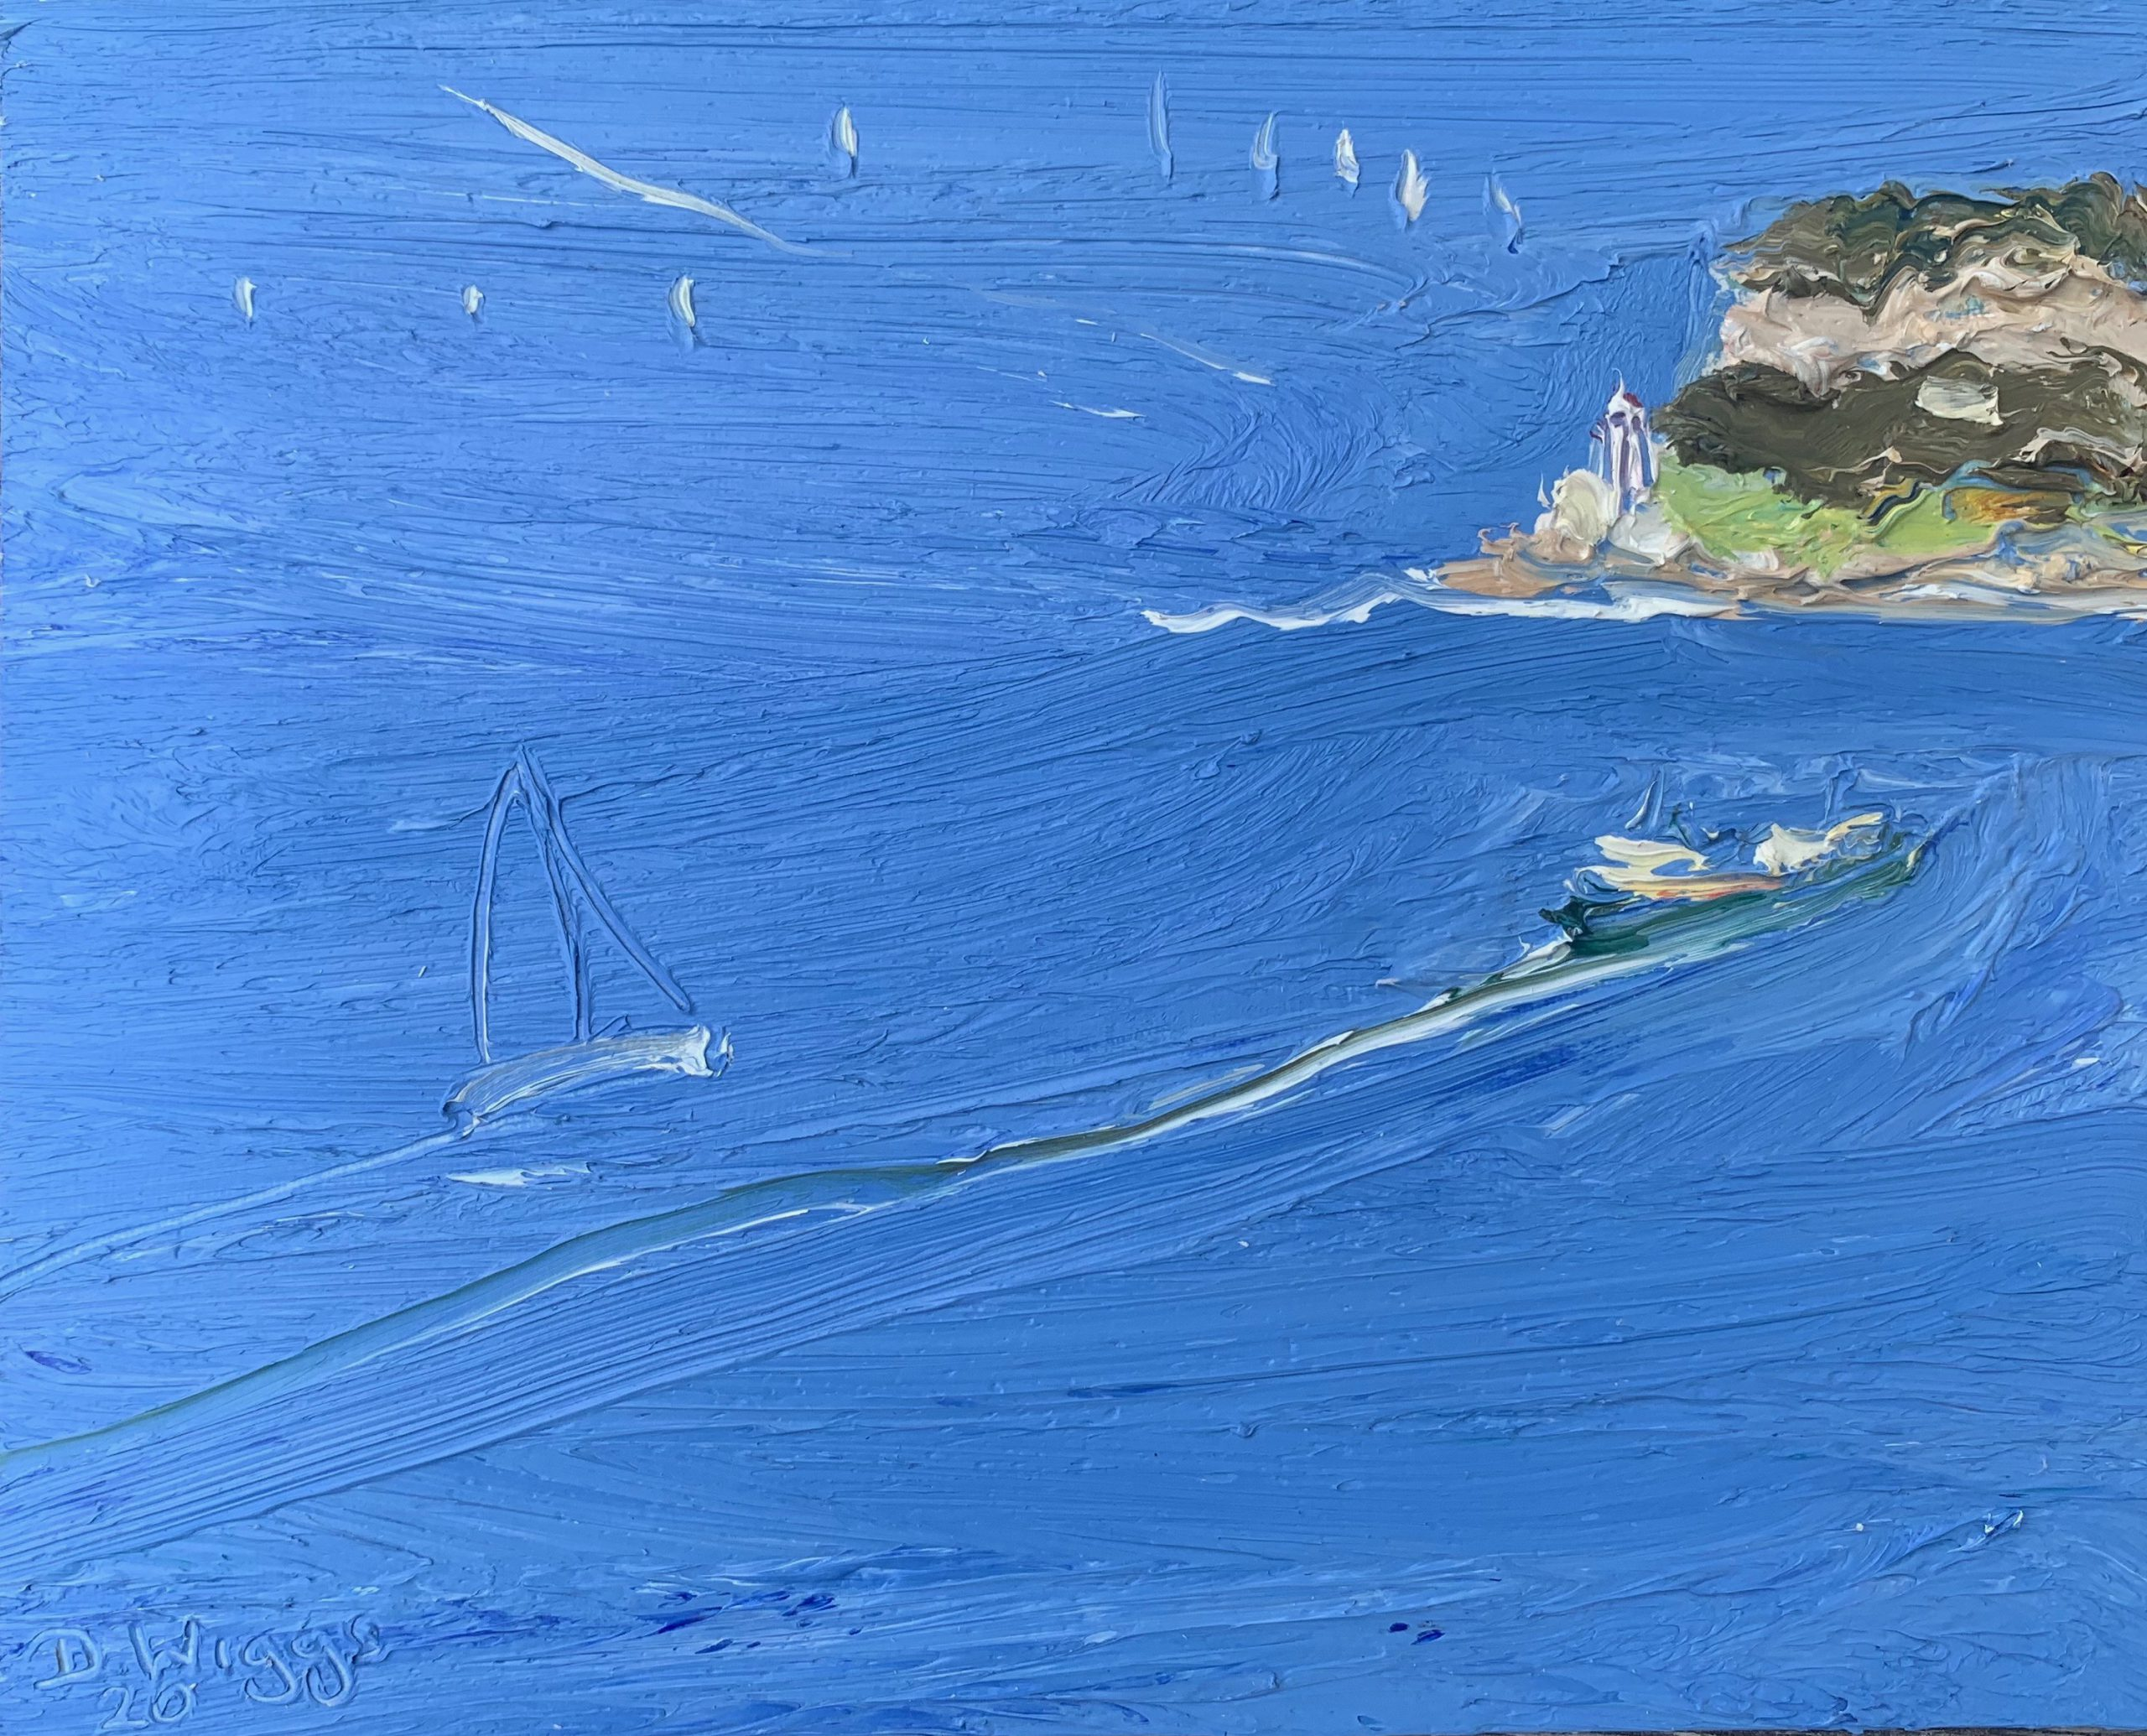 Manly ferry-Big yacht and South head-Plein air-Oil on oil paper-50cm x 55cm framed-David K Wiggs 2020